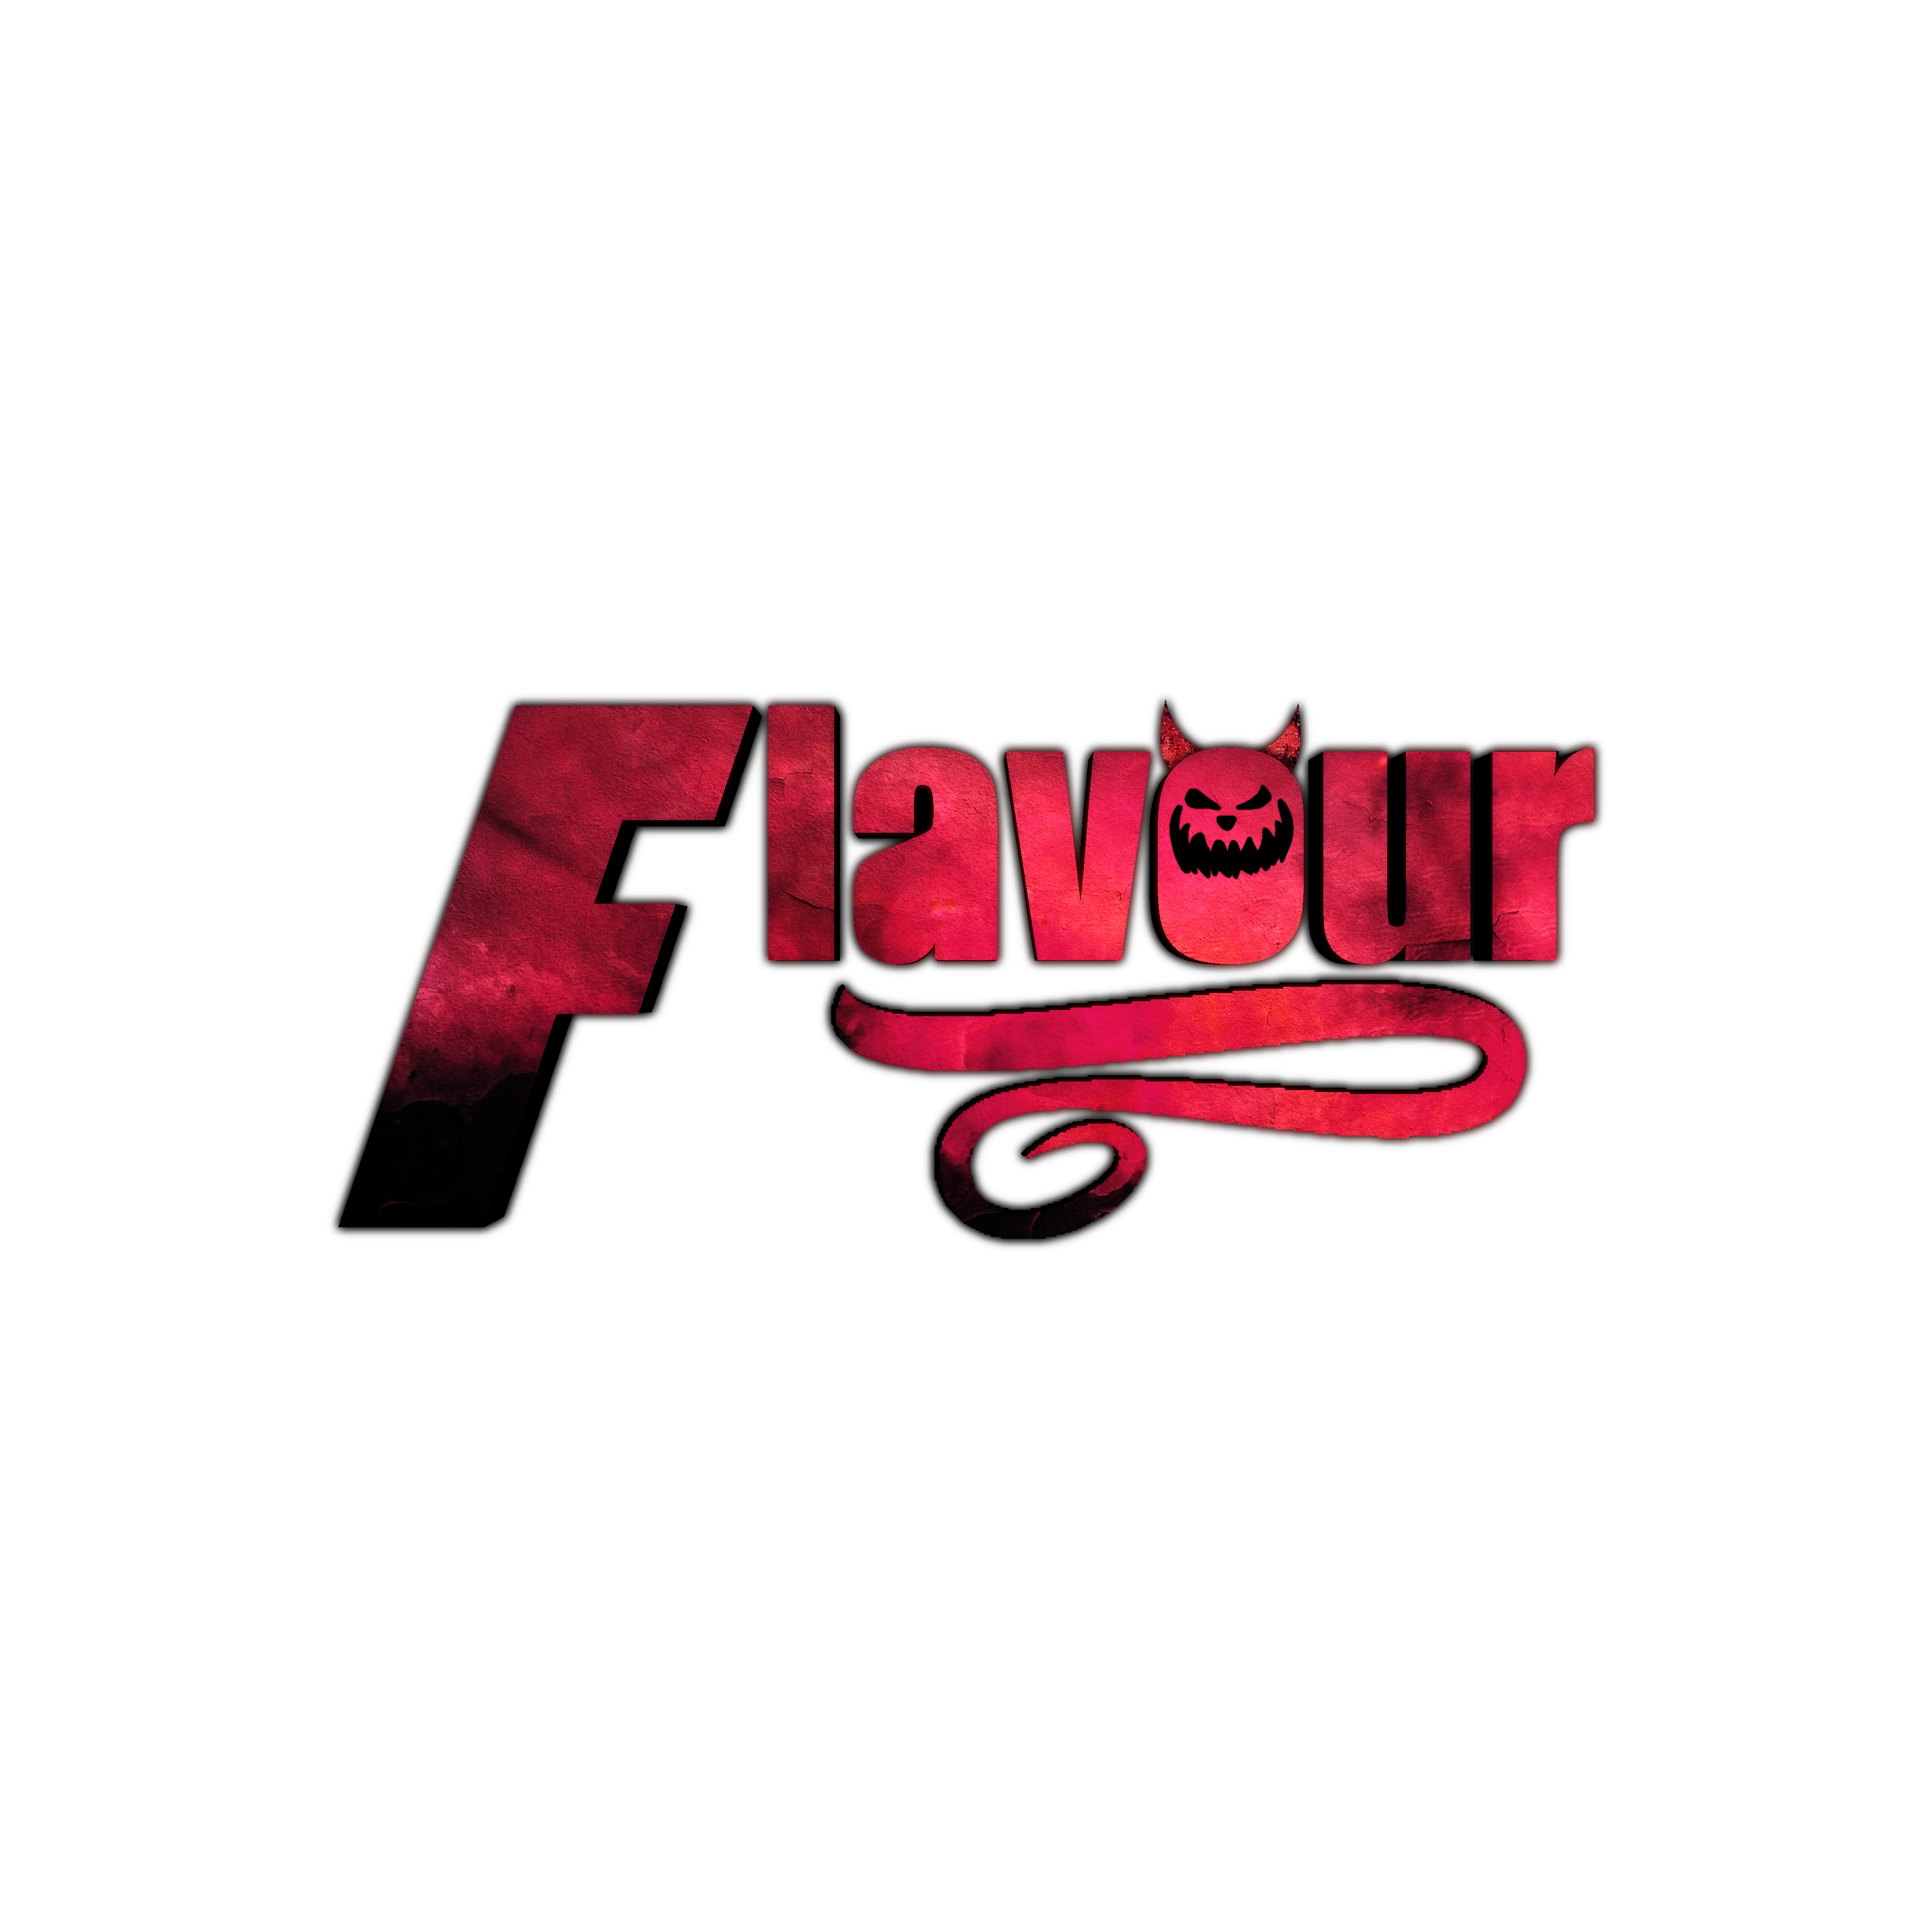 Flavour.png